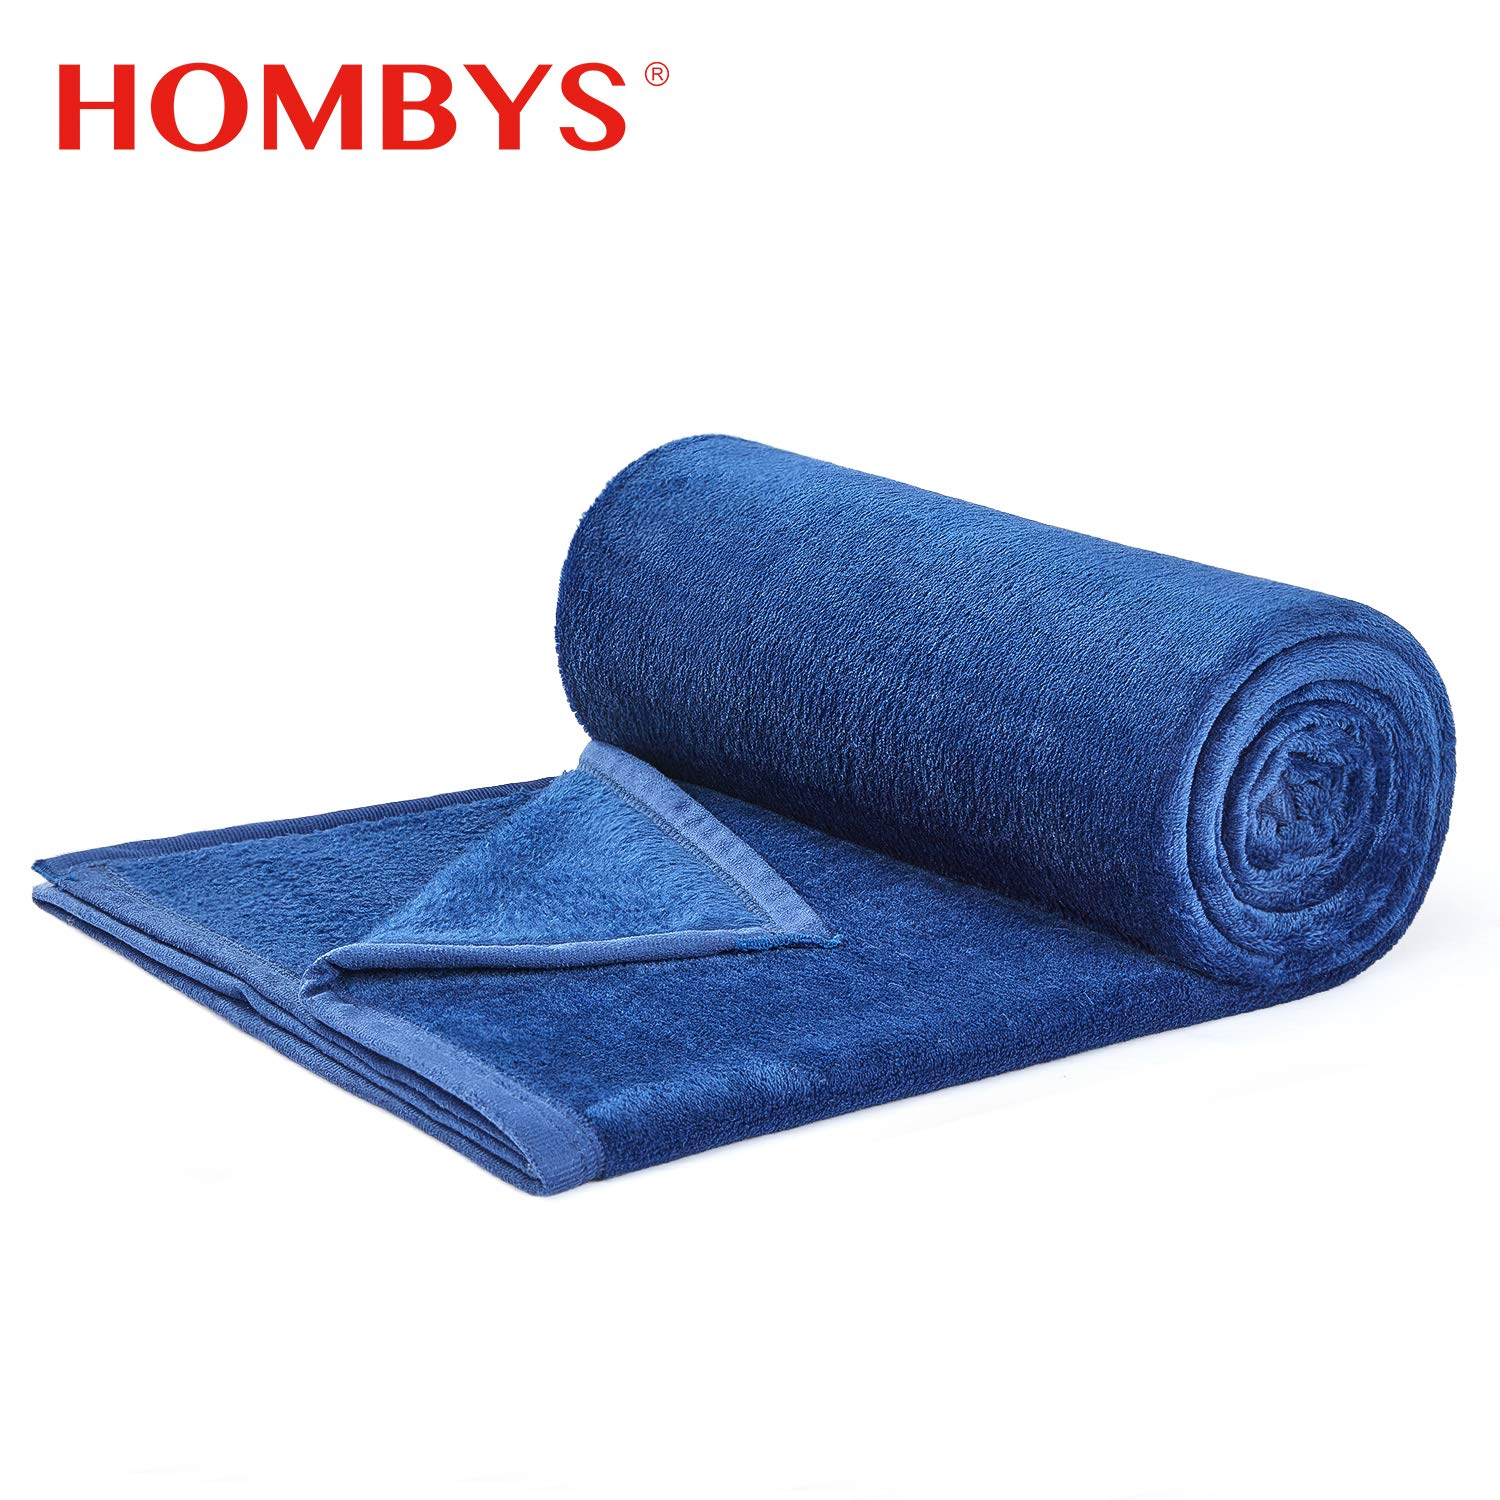 """HOMBYS Flannel Fleece Blanket Lightweight All Season Soft Cozy Couch Bed Fuzzy Blankets (Navy, Throw(50""""x60""""))"""